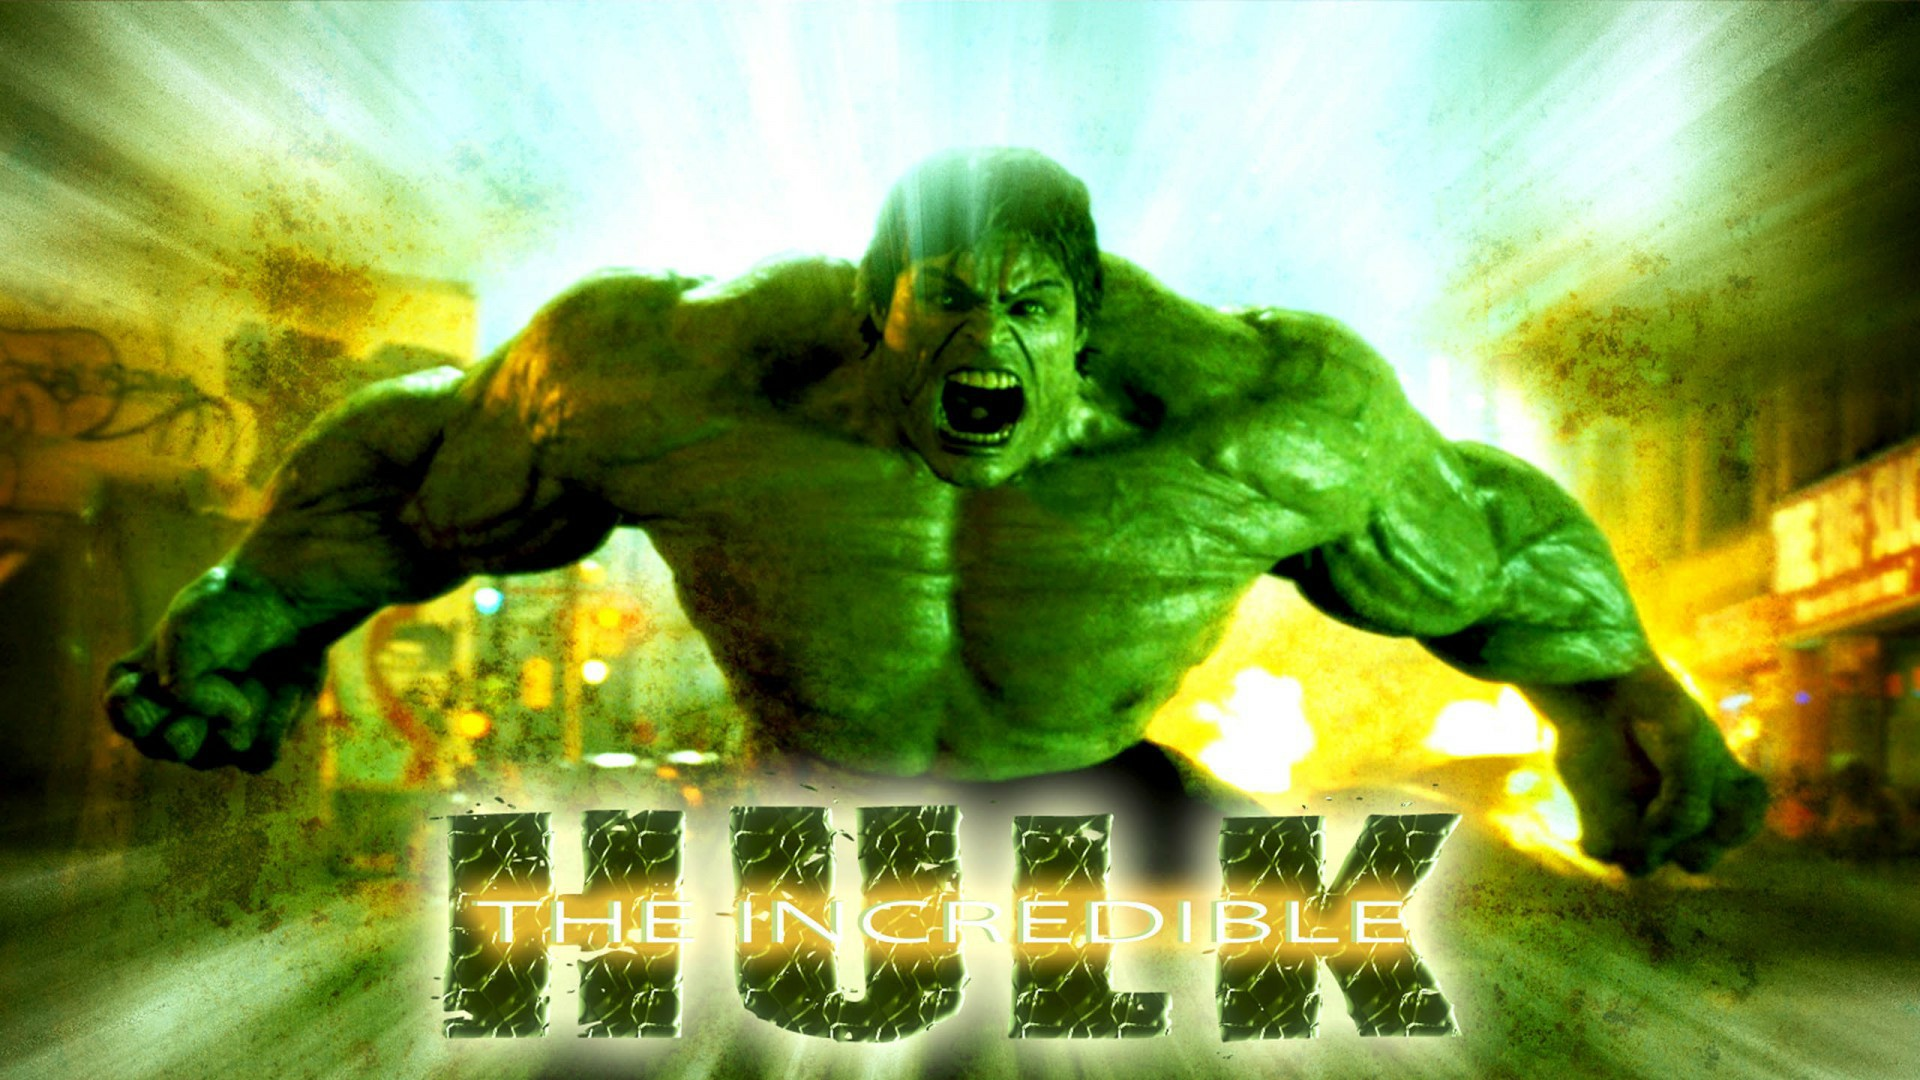 Incredible Hulk Marvel Avenger Superhero Latest Background Hd Wallpaper